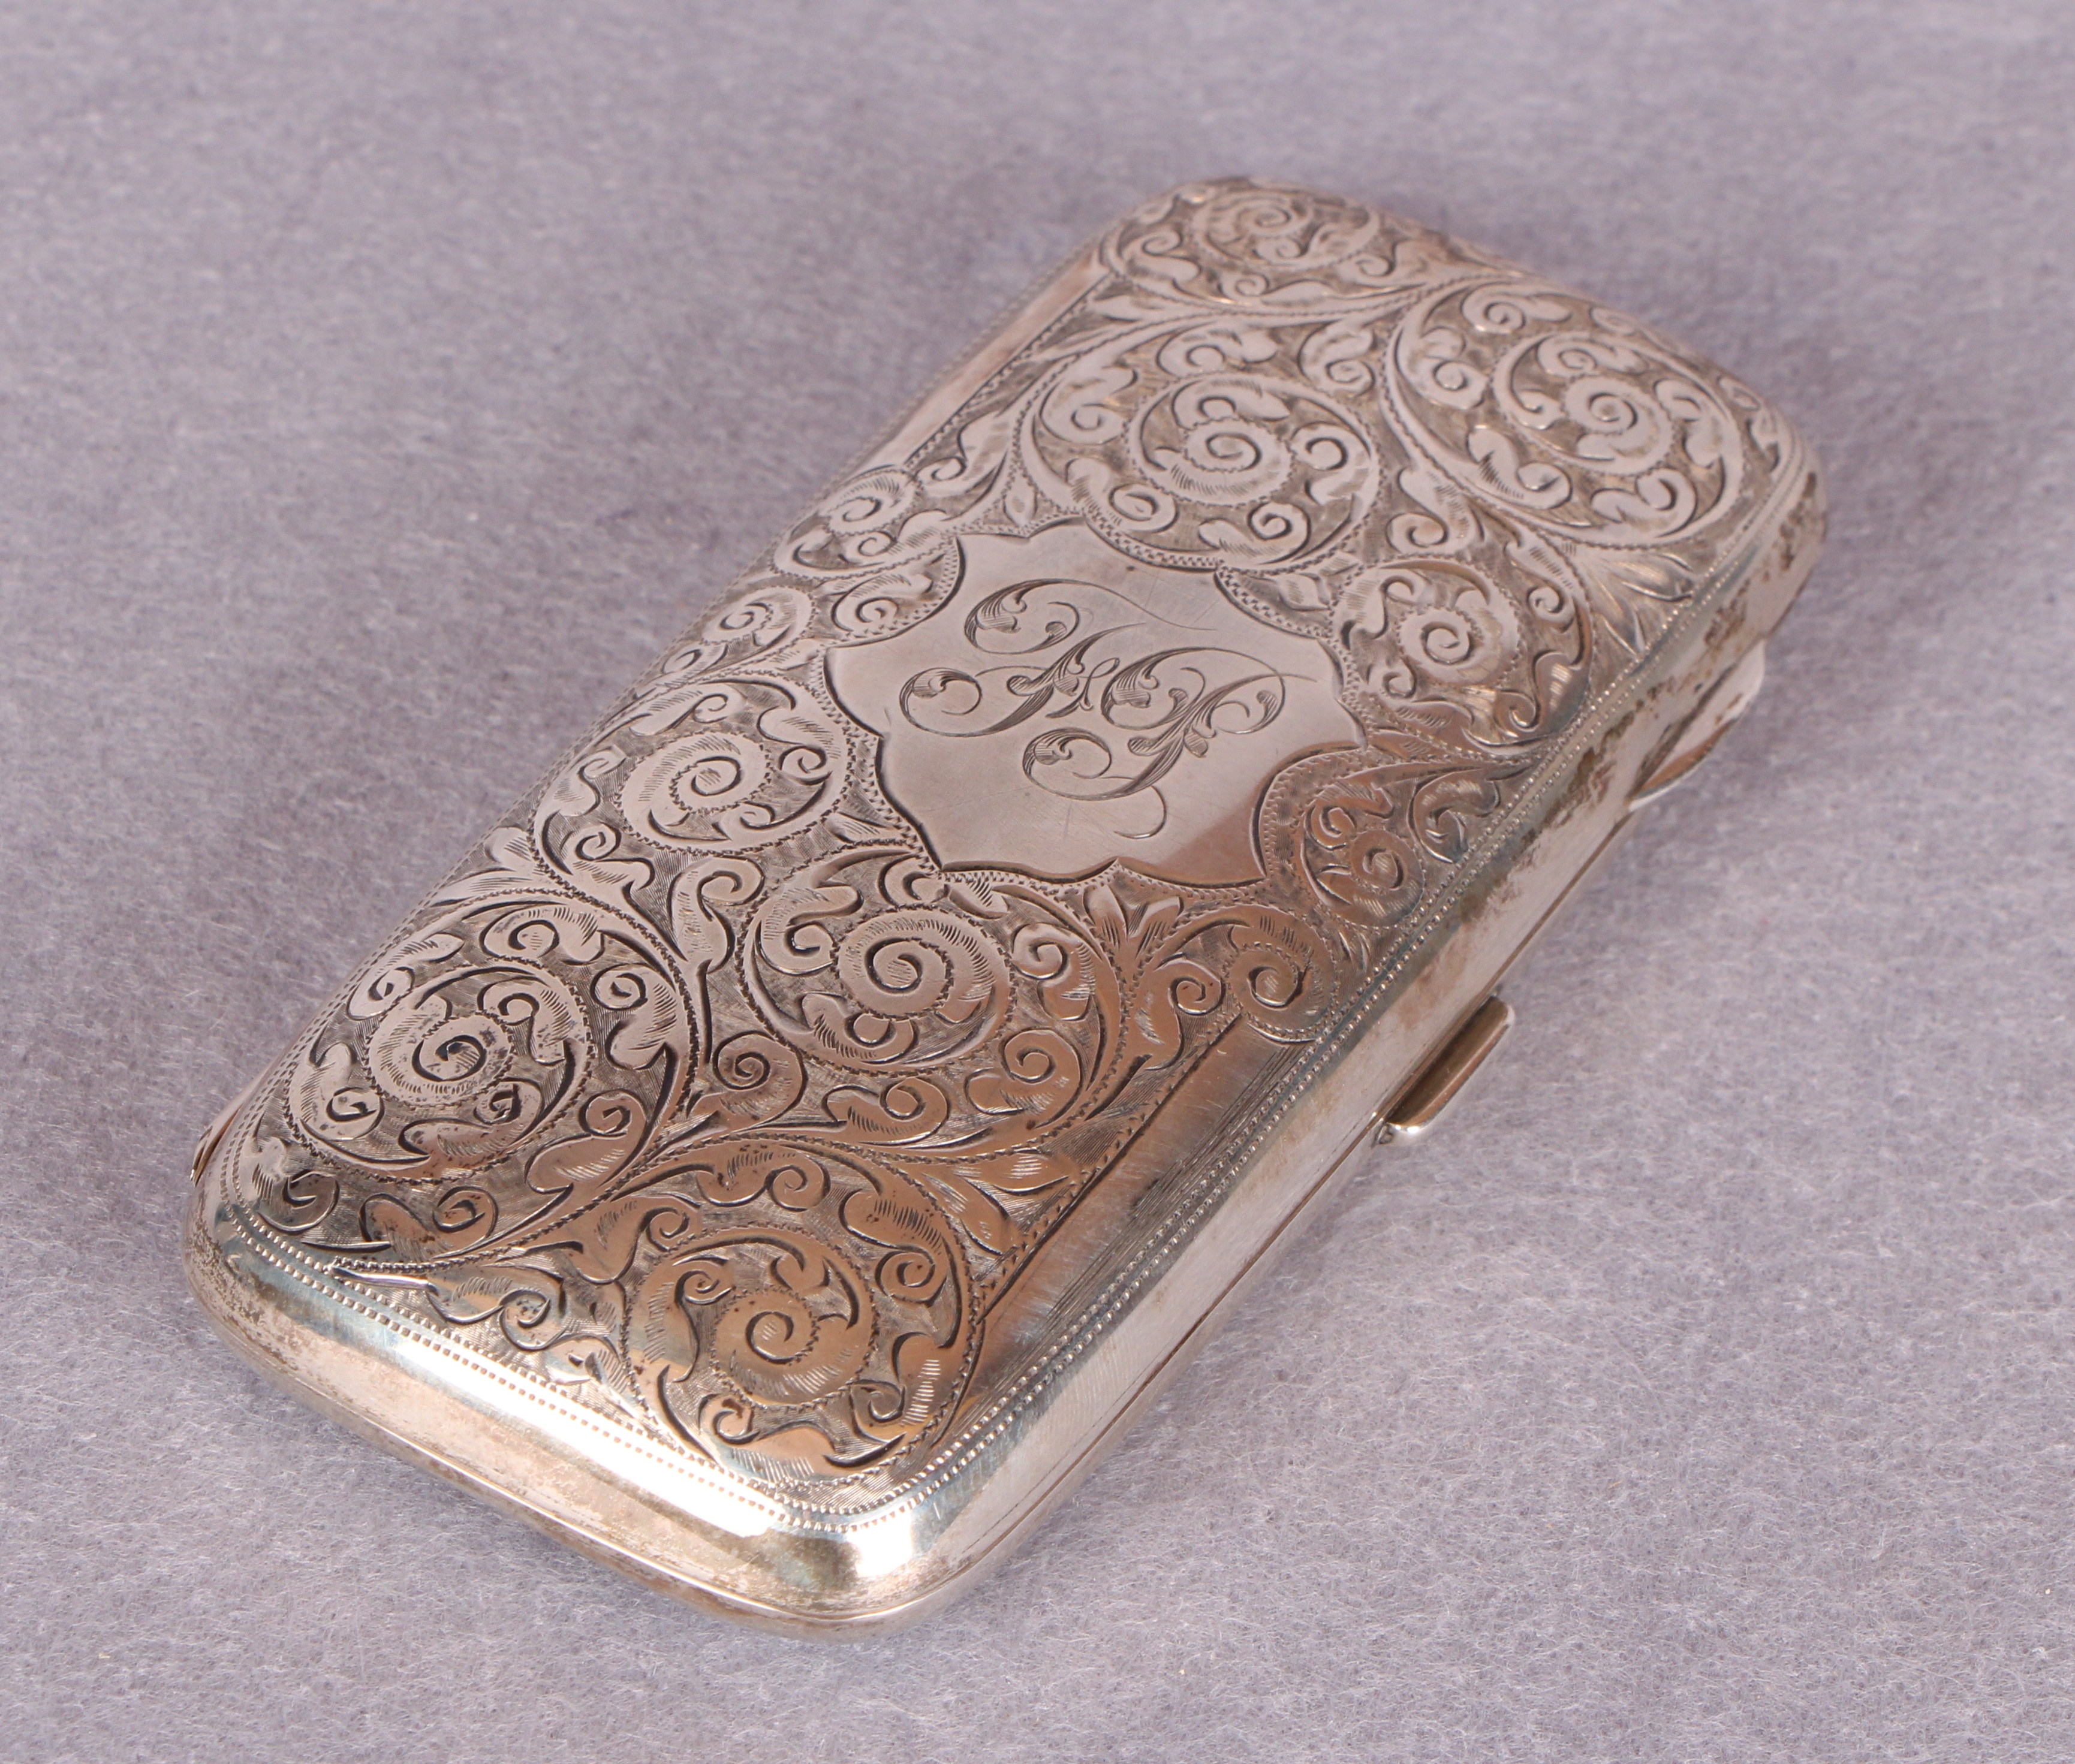 An Edwardian cigar case, overall engraved with foliage, the interior gilt, - Image 3 of 3